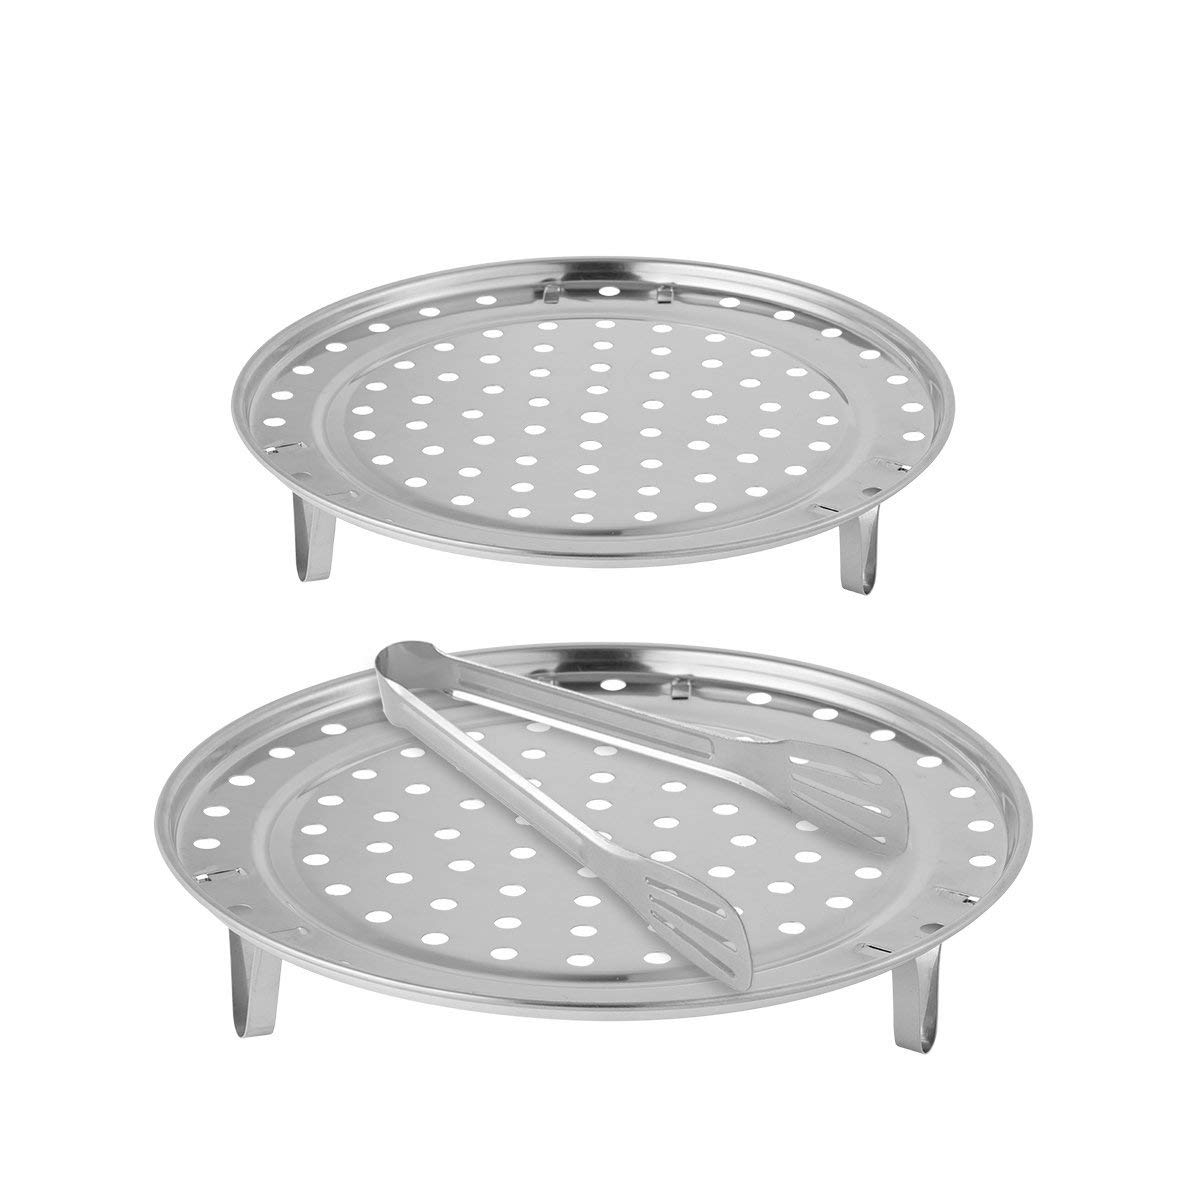 Canning Rack - Aieve 2 Pack 9 10 Inch Canner Rack Cooker Rack Pressure Cooker Rack with Detachable Legs,1 Pack 9 Inch Kitchen Tongs for Cooking,Baking,Toast,Bread,Salad